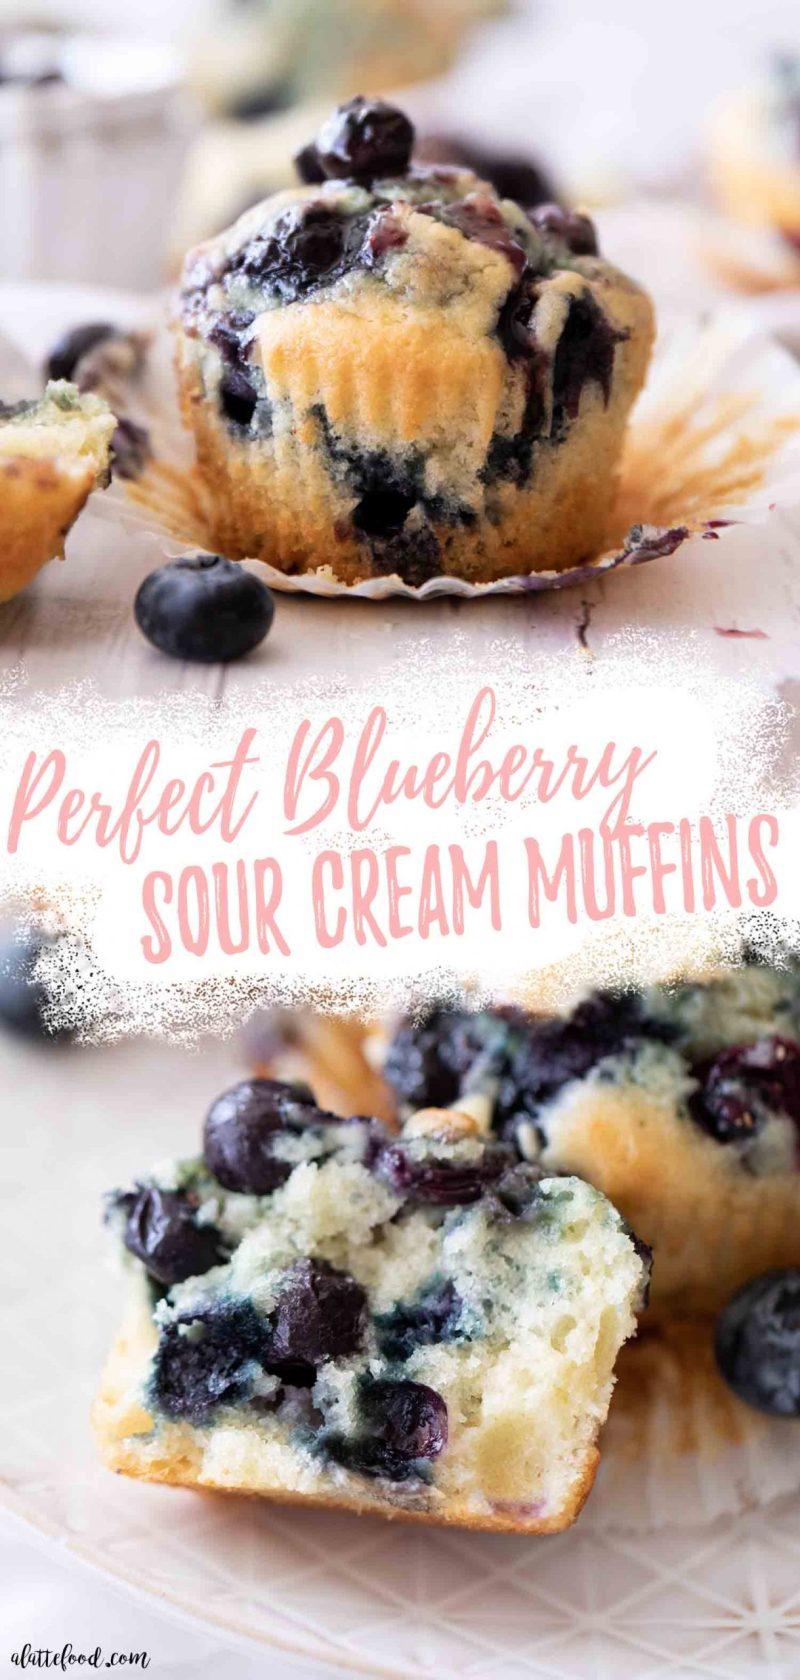 homemade sour cream blueberry muffins collage with a blueberry muffin cut in half sitting on a white plate